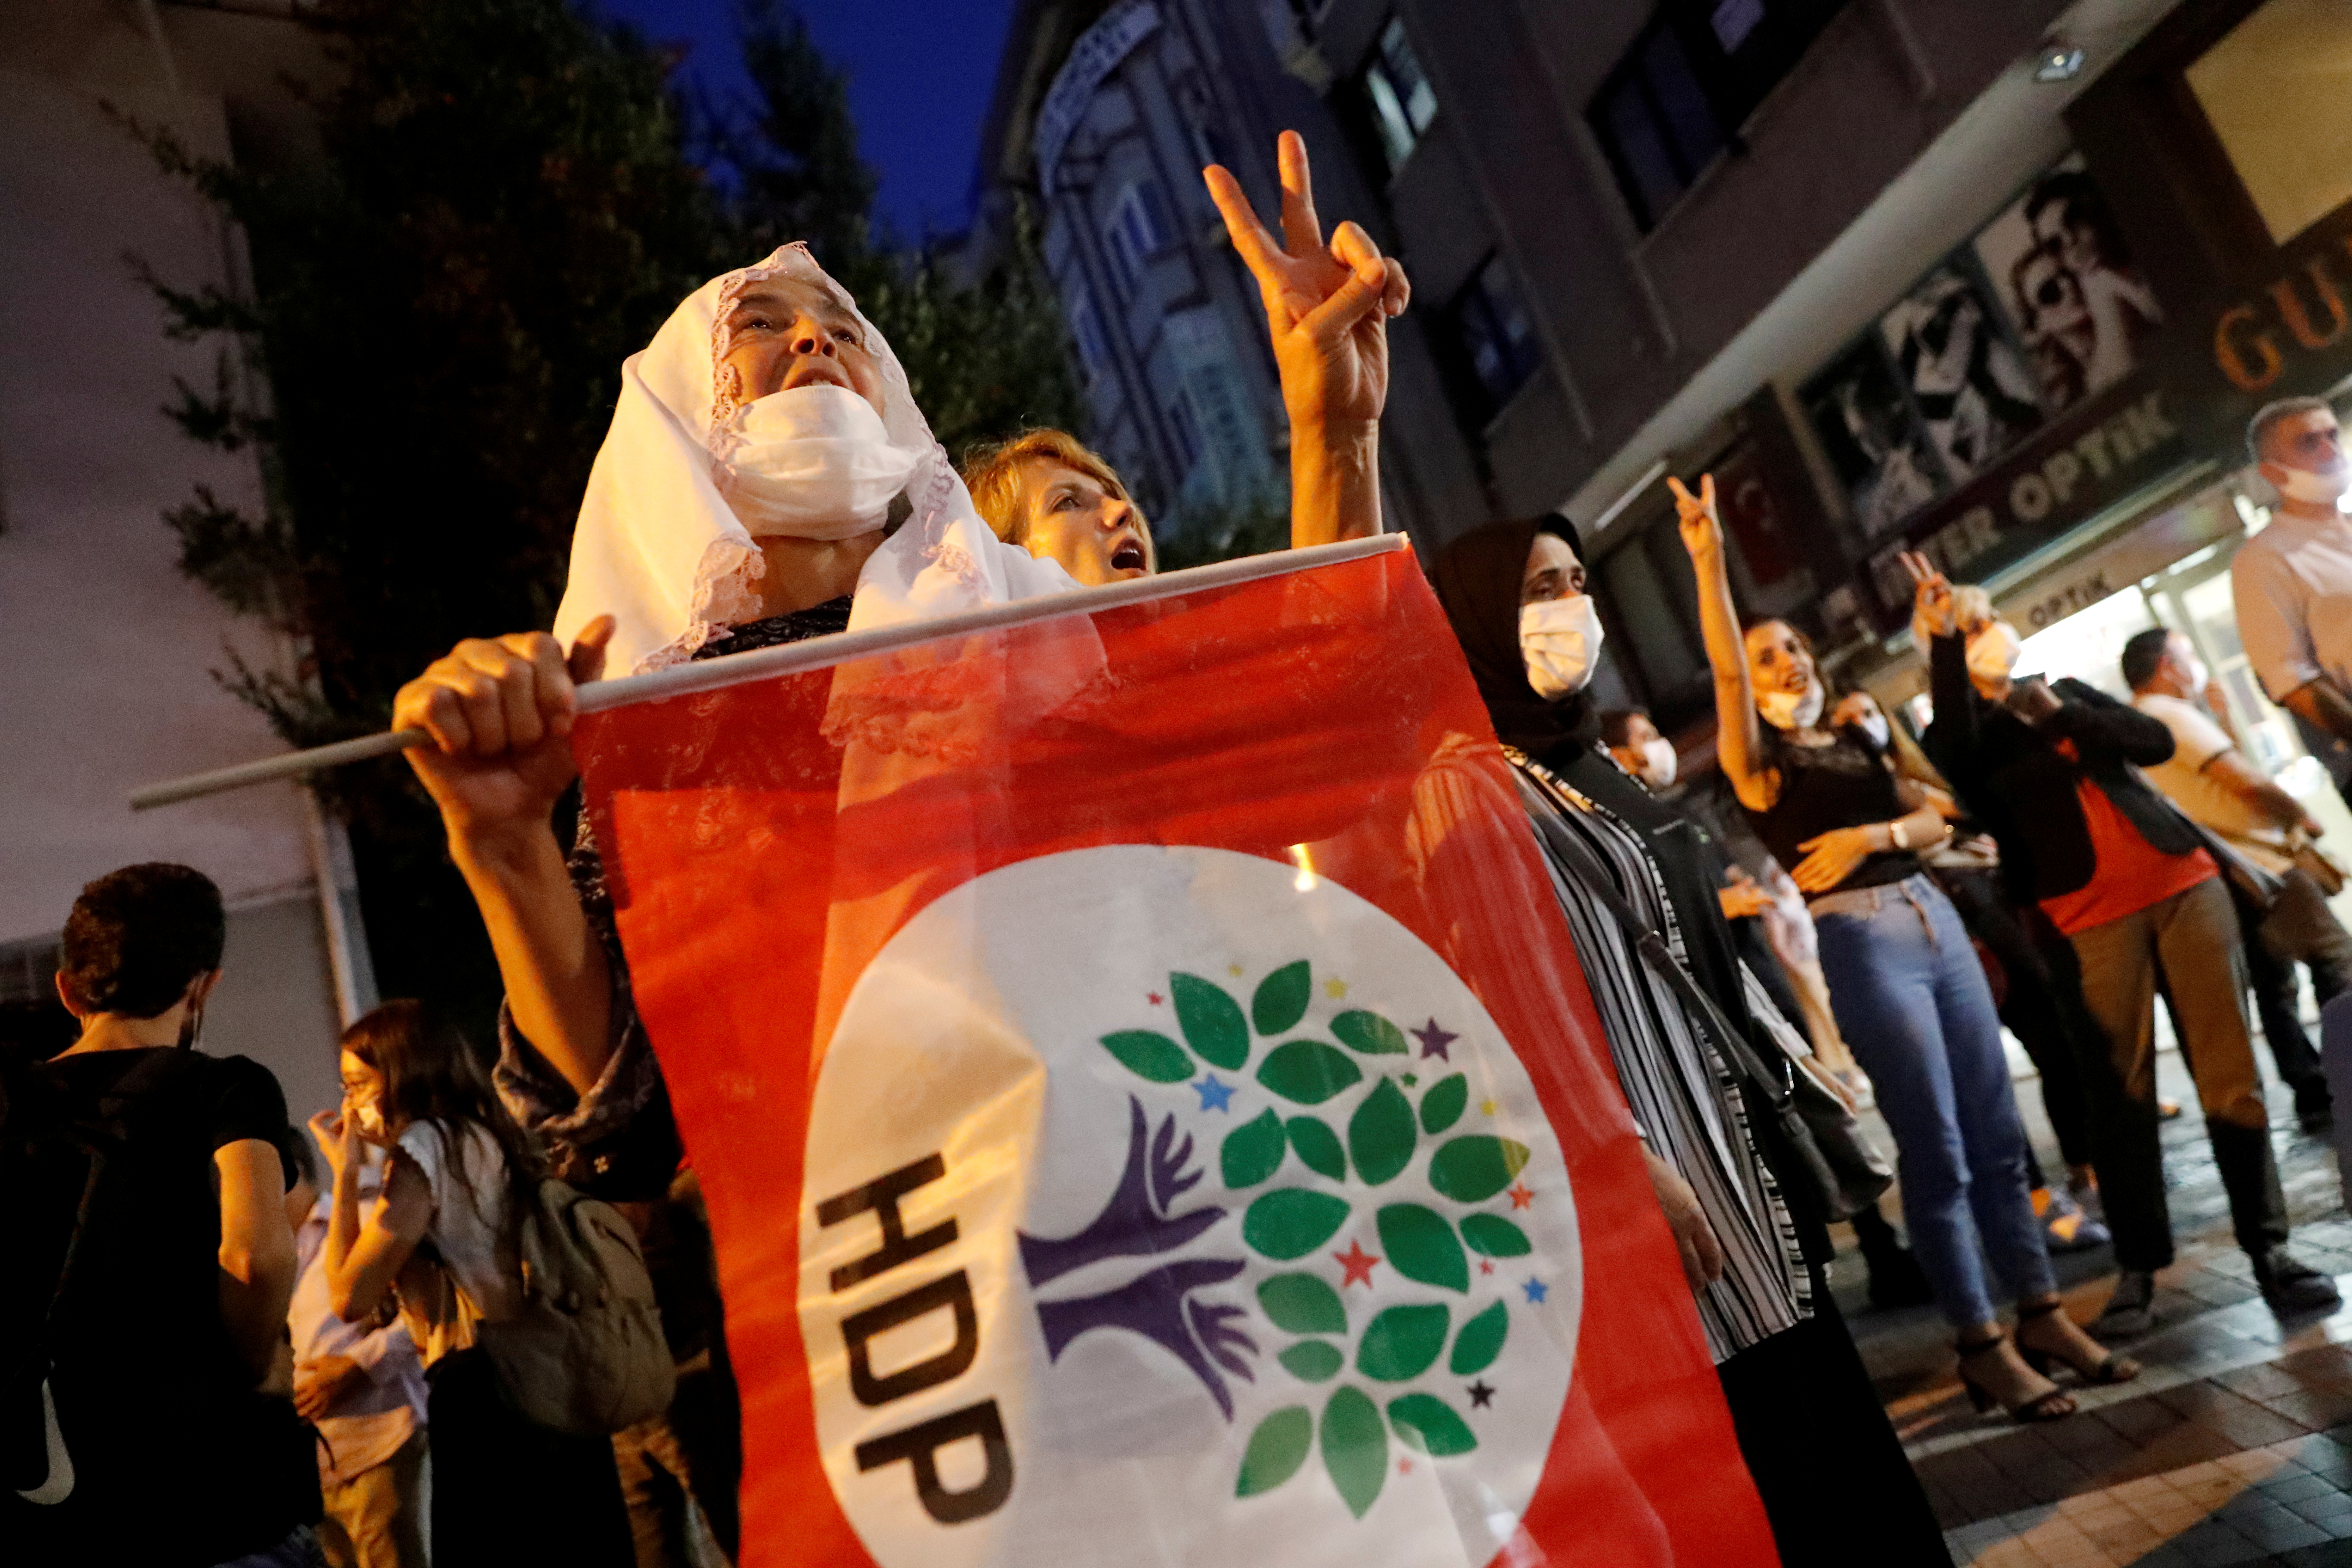 Supporters of pro-Kurdish Peoples Democratic Party (HDP) shout slogans during a protest against the arrest of 82 people including members of their party, in Istanbul, Turkey September 25, 2020. REUTERS/Murad Sezer/File Photo